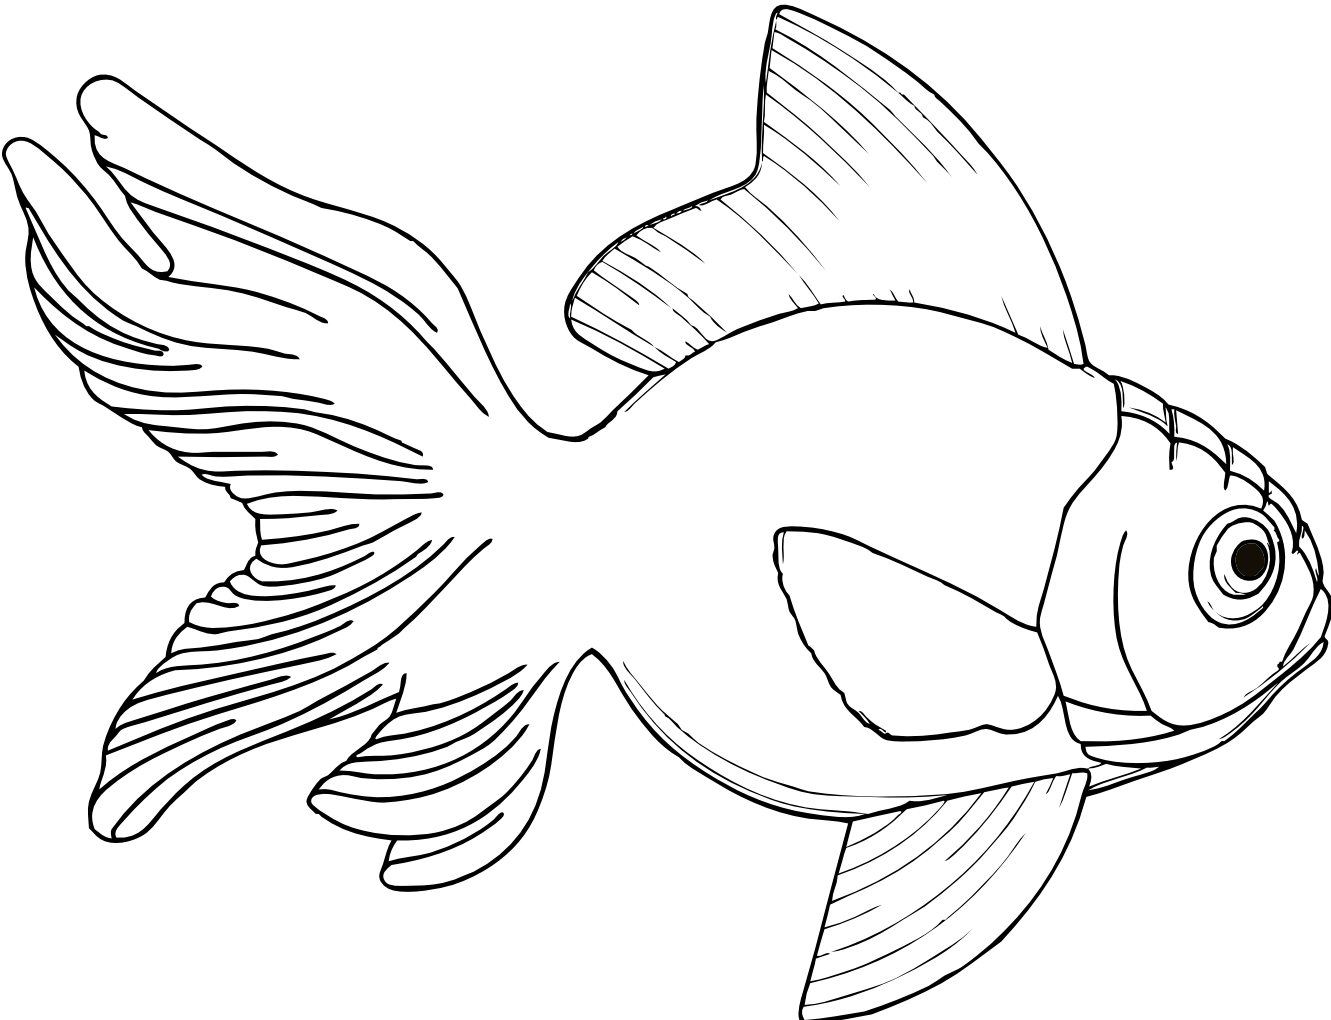 Simple Fish Line Art : Fish line art clipart best